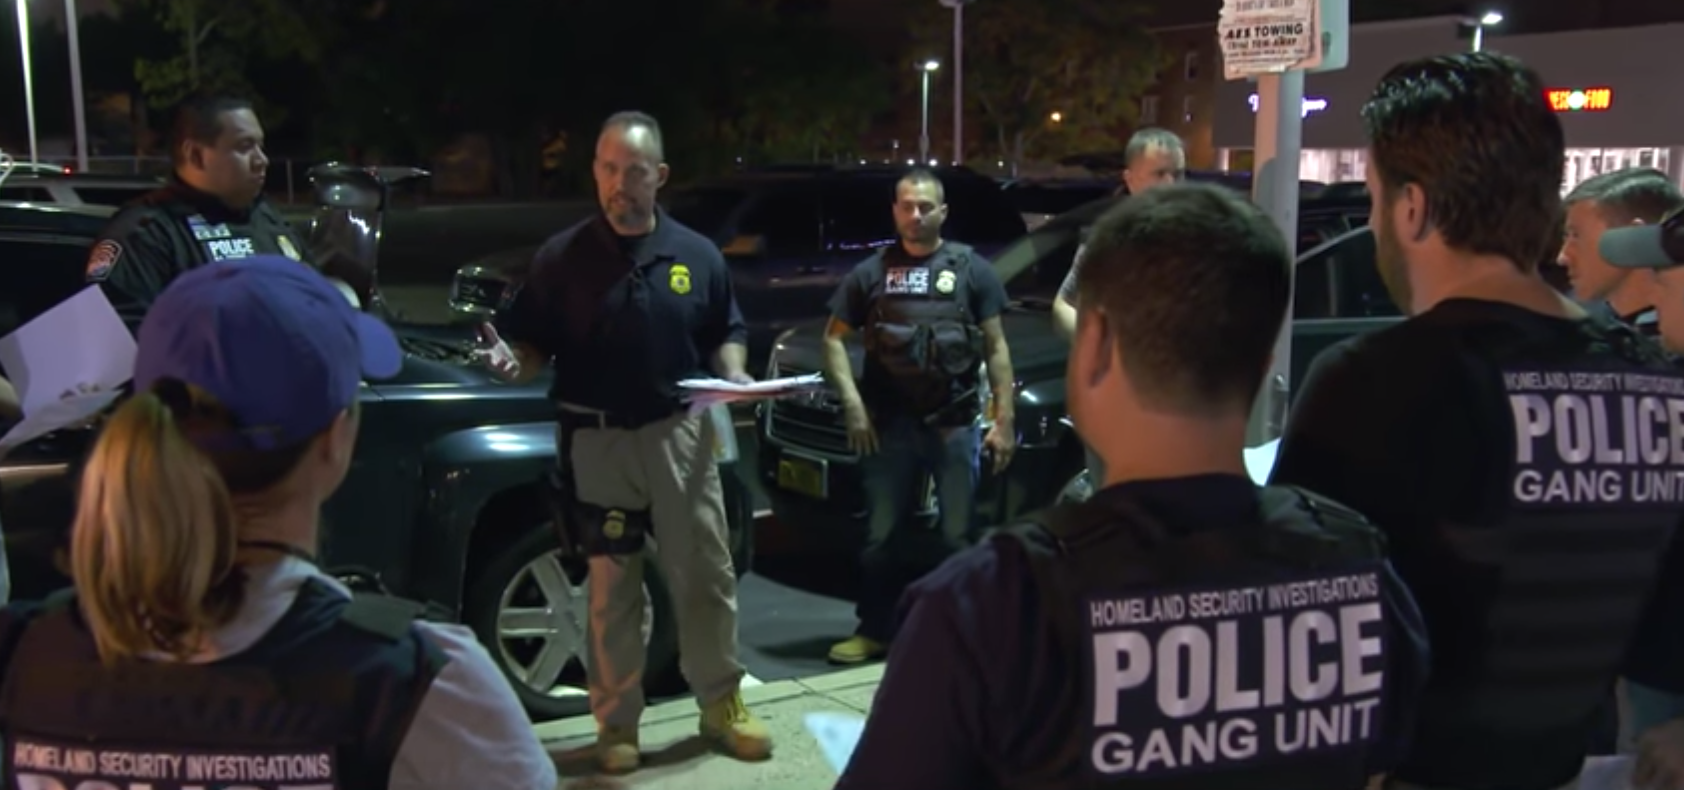 More than 5,000 gang members and 60,000 criminals deported in 2019 - while presidential candidates call to abolish ICE